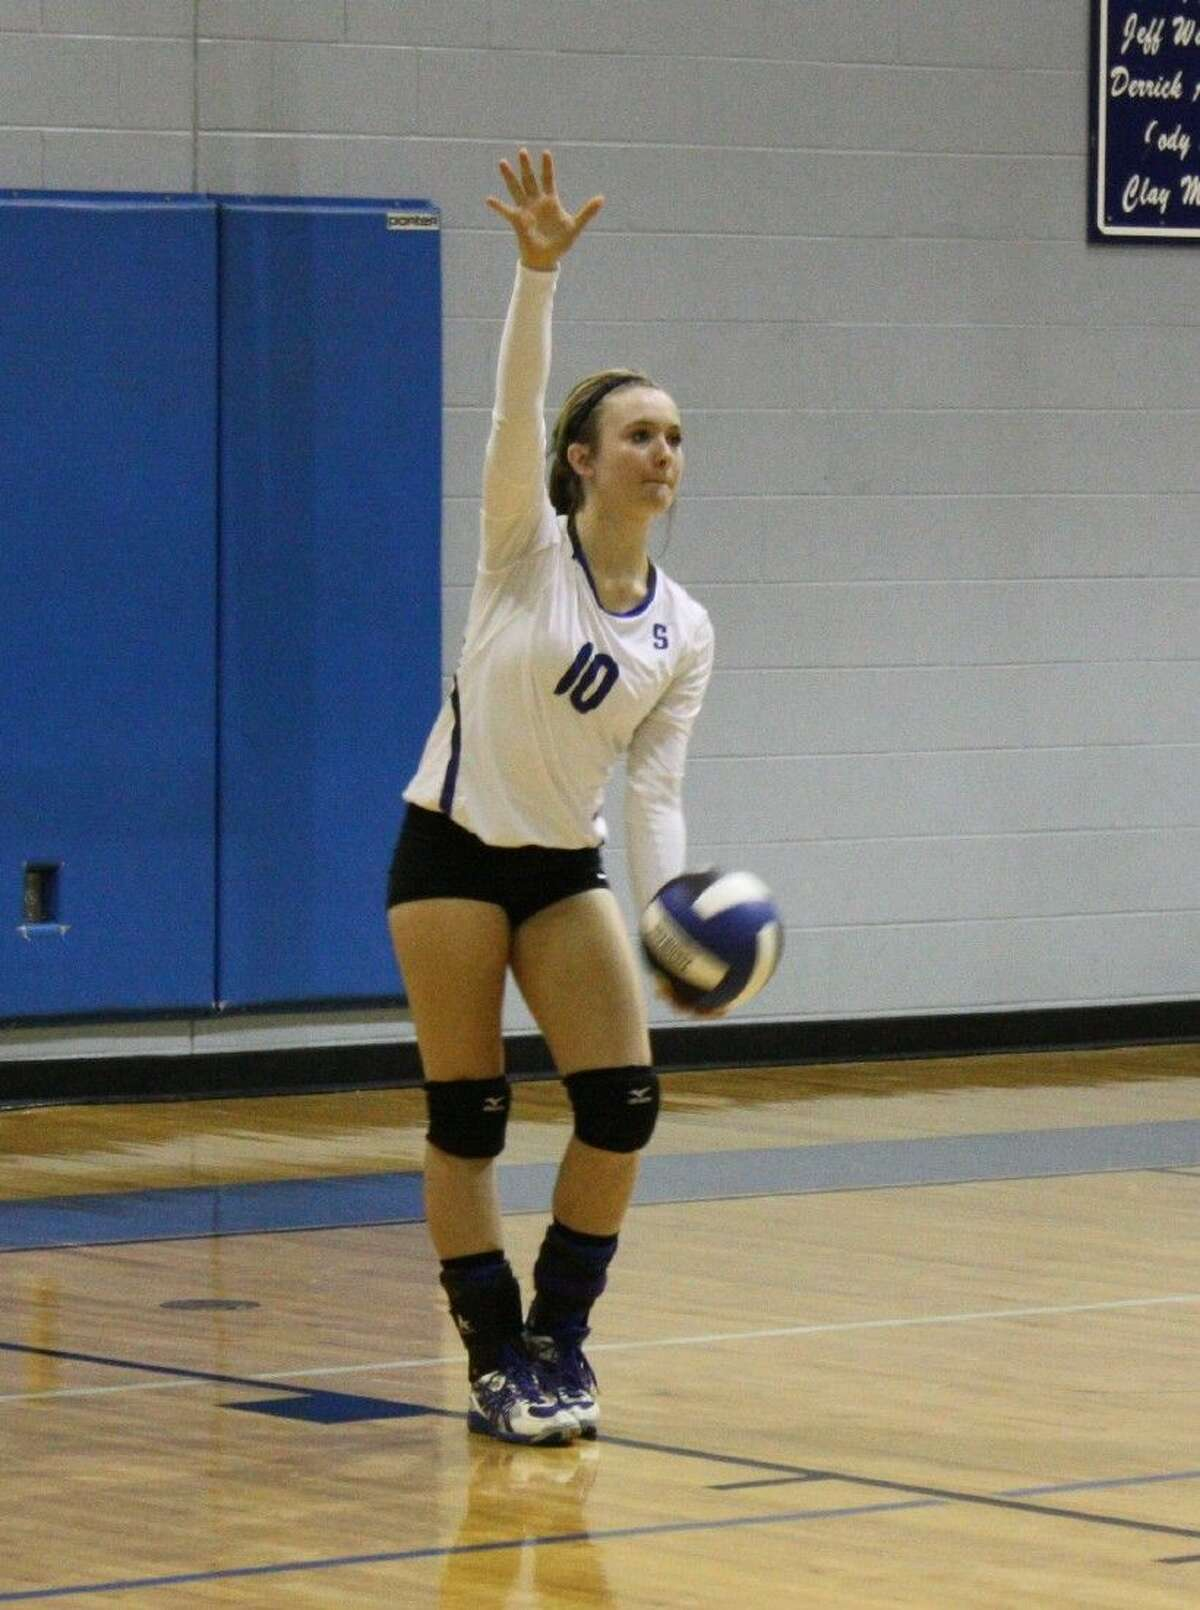 Brittany Keith of the Lady Pirates prepares to serve the ball over to the Groveton Indians' side of the court.